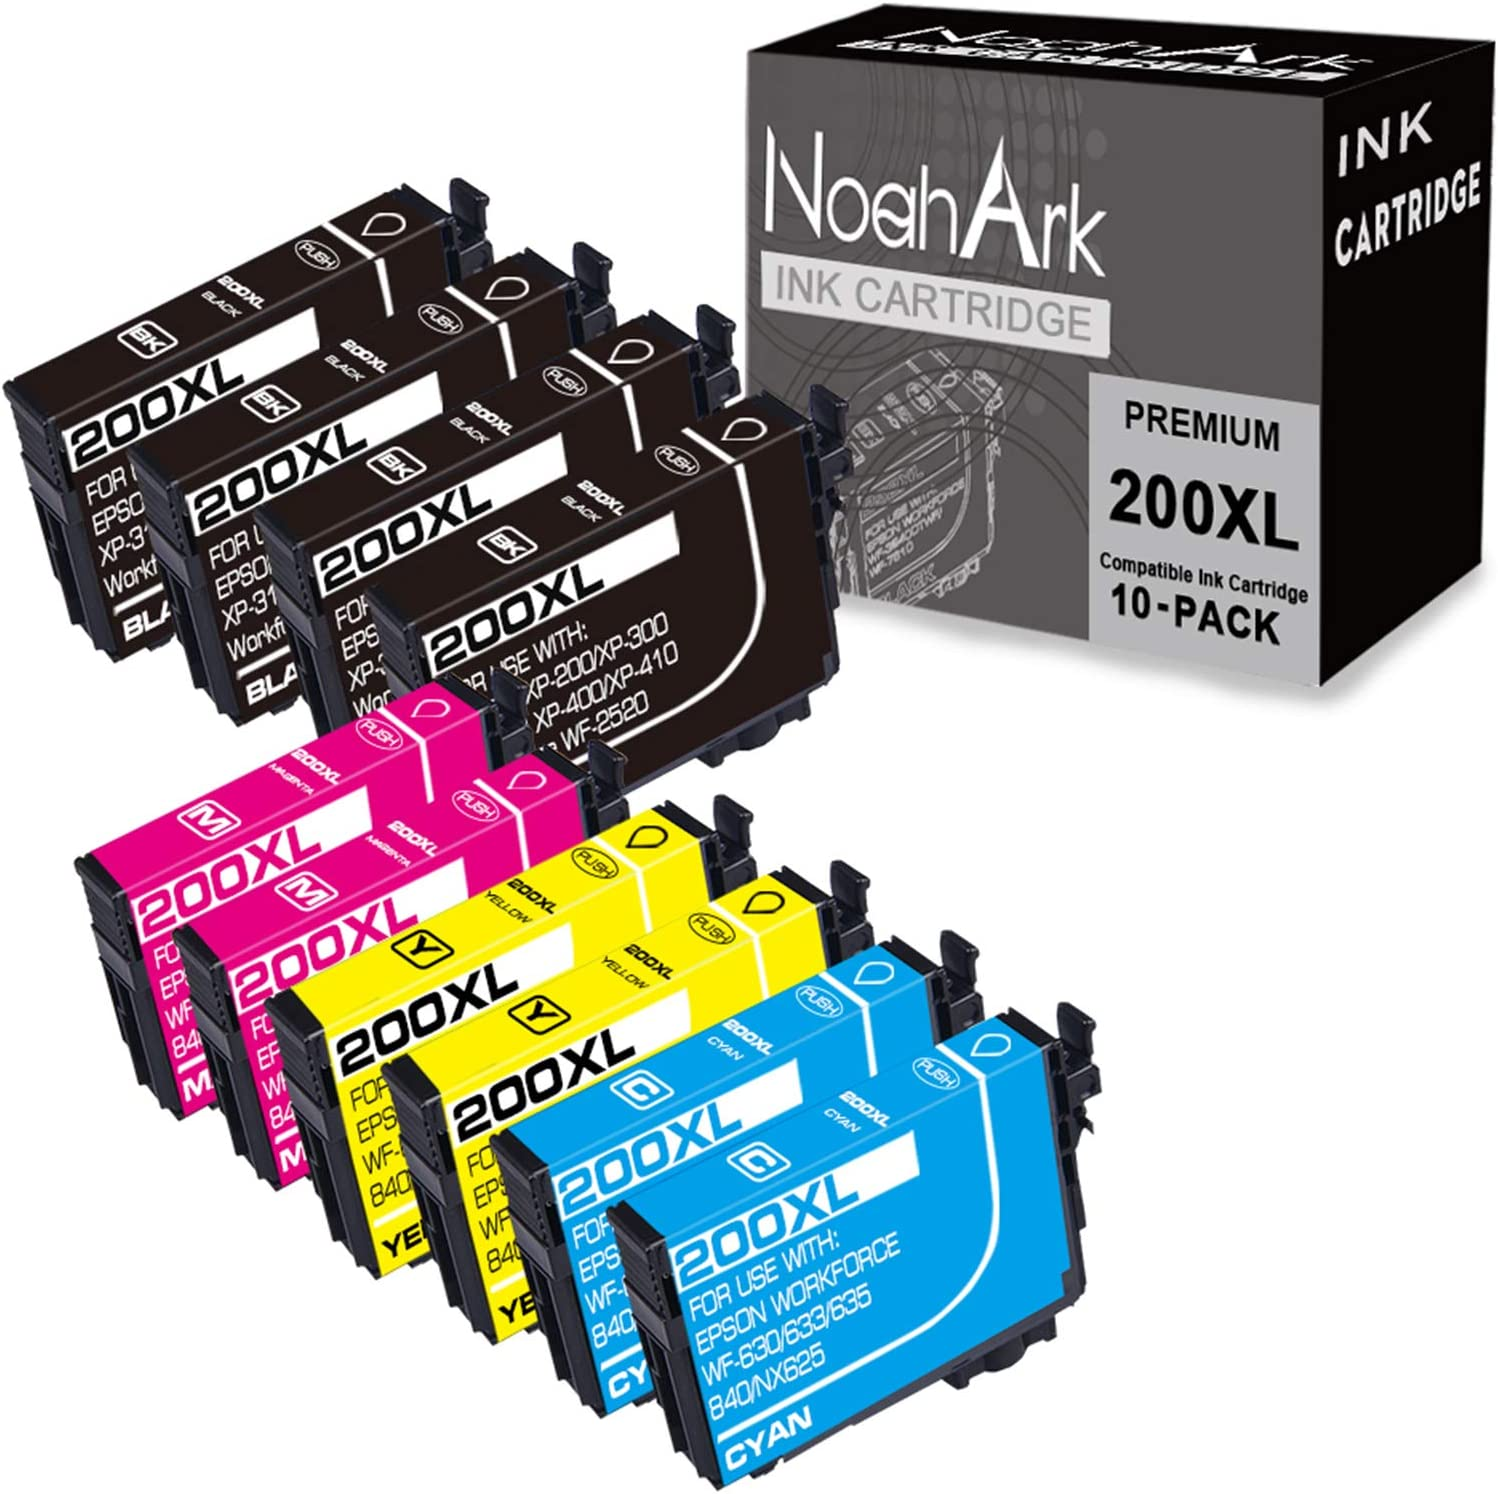 NoahArk Remanufactured Ink Cartridge Replacement for Epson 200 XL 200XL T200XL use for Expression Home XP-200 XP-300 XP-310 XP-400 XP-410 Workforce WF-2520 WF-2530 (4 Black 2 Cyan 2 Magenta 2 Yellow)